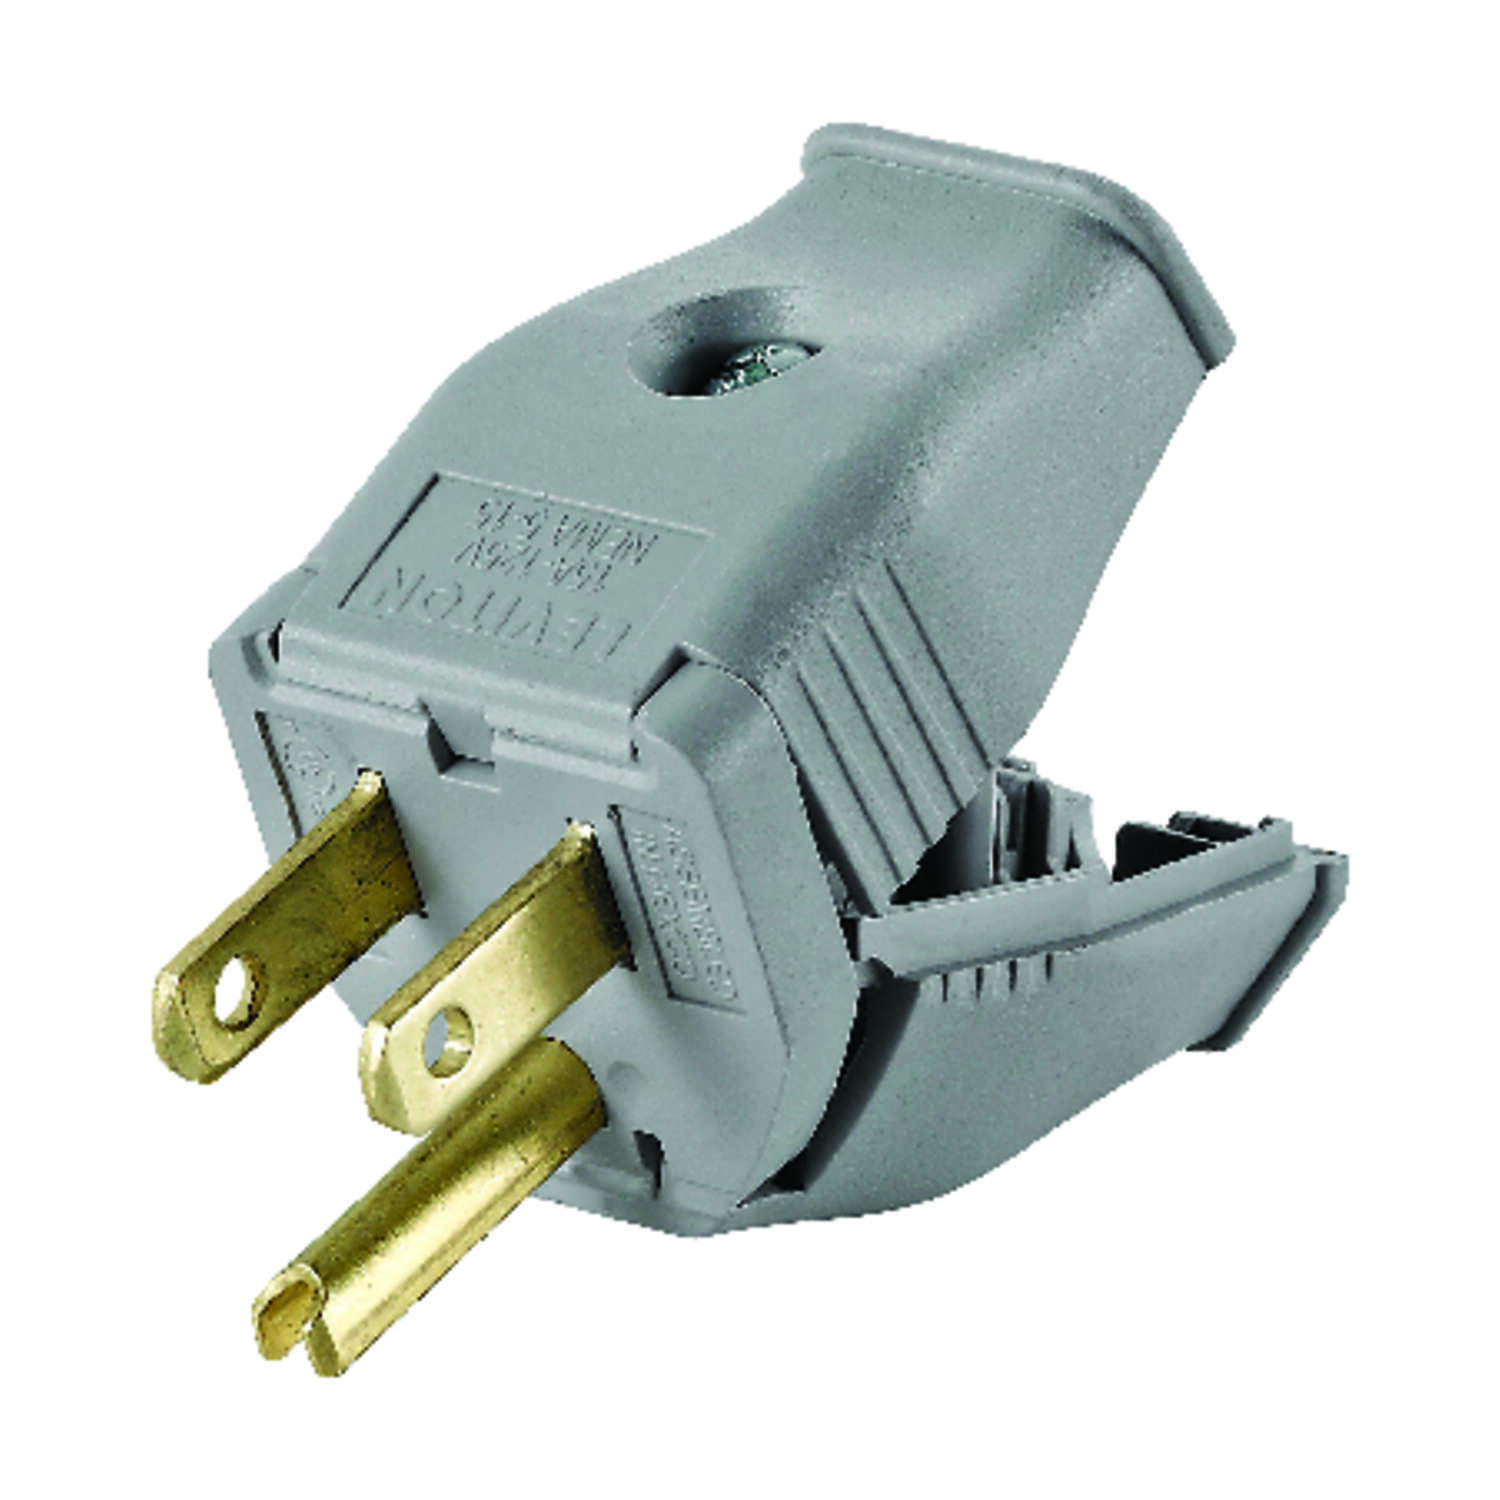 Leviton  Commercial and Residential  Thermoplastic  Straight Blade  Plug  5-15P  18-12 AWG 2 Pole 3